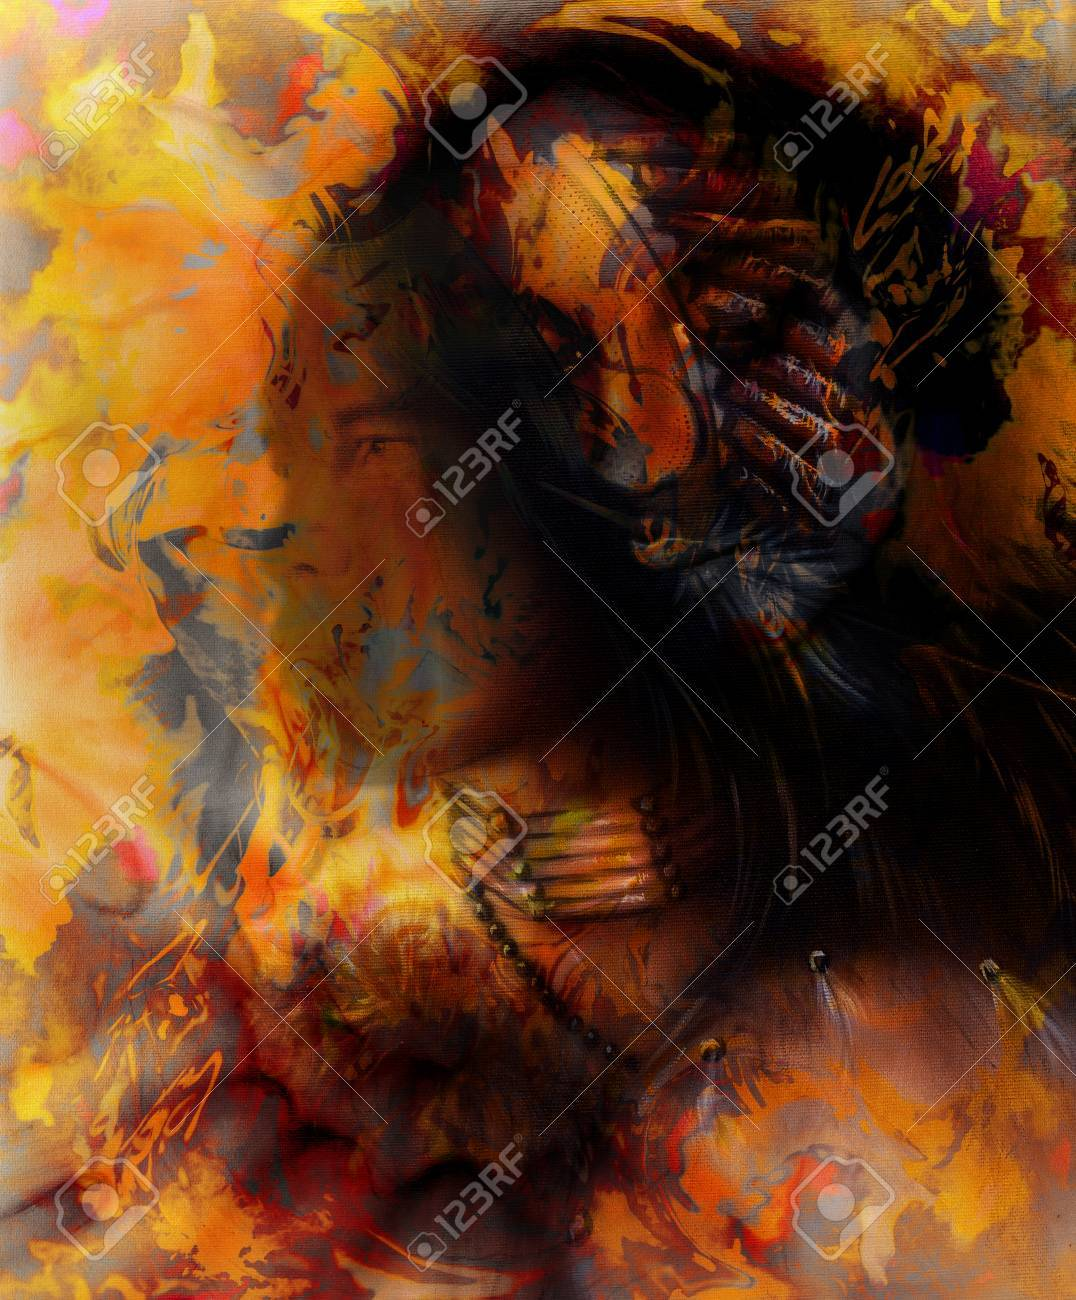 Young Indian Warrior And Woman Face Abstract Color Background